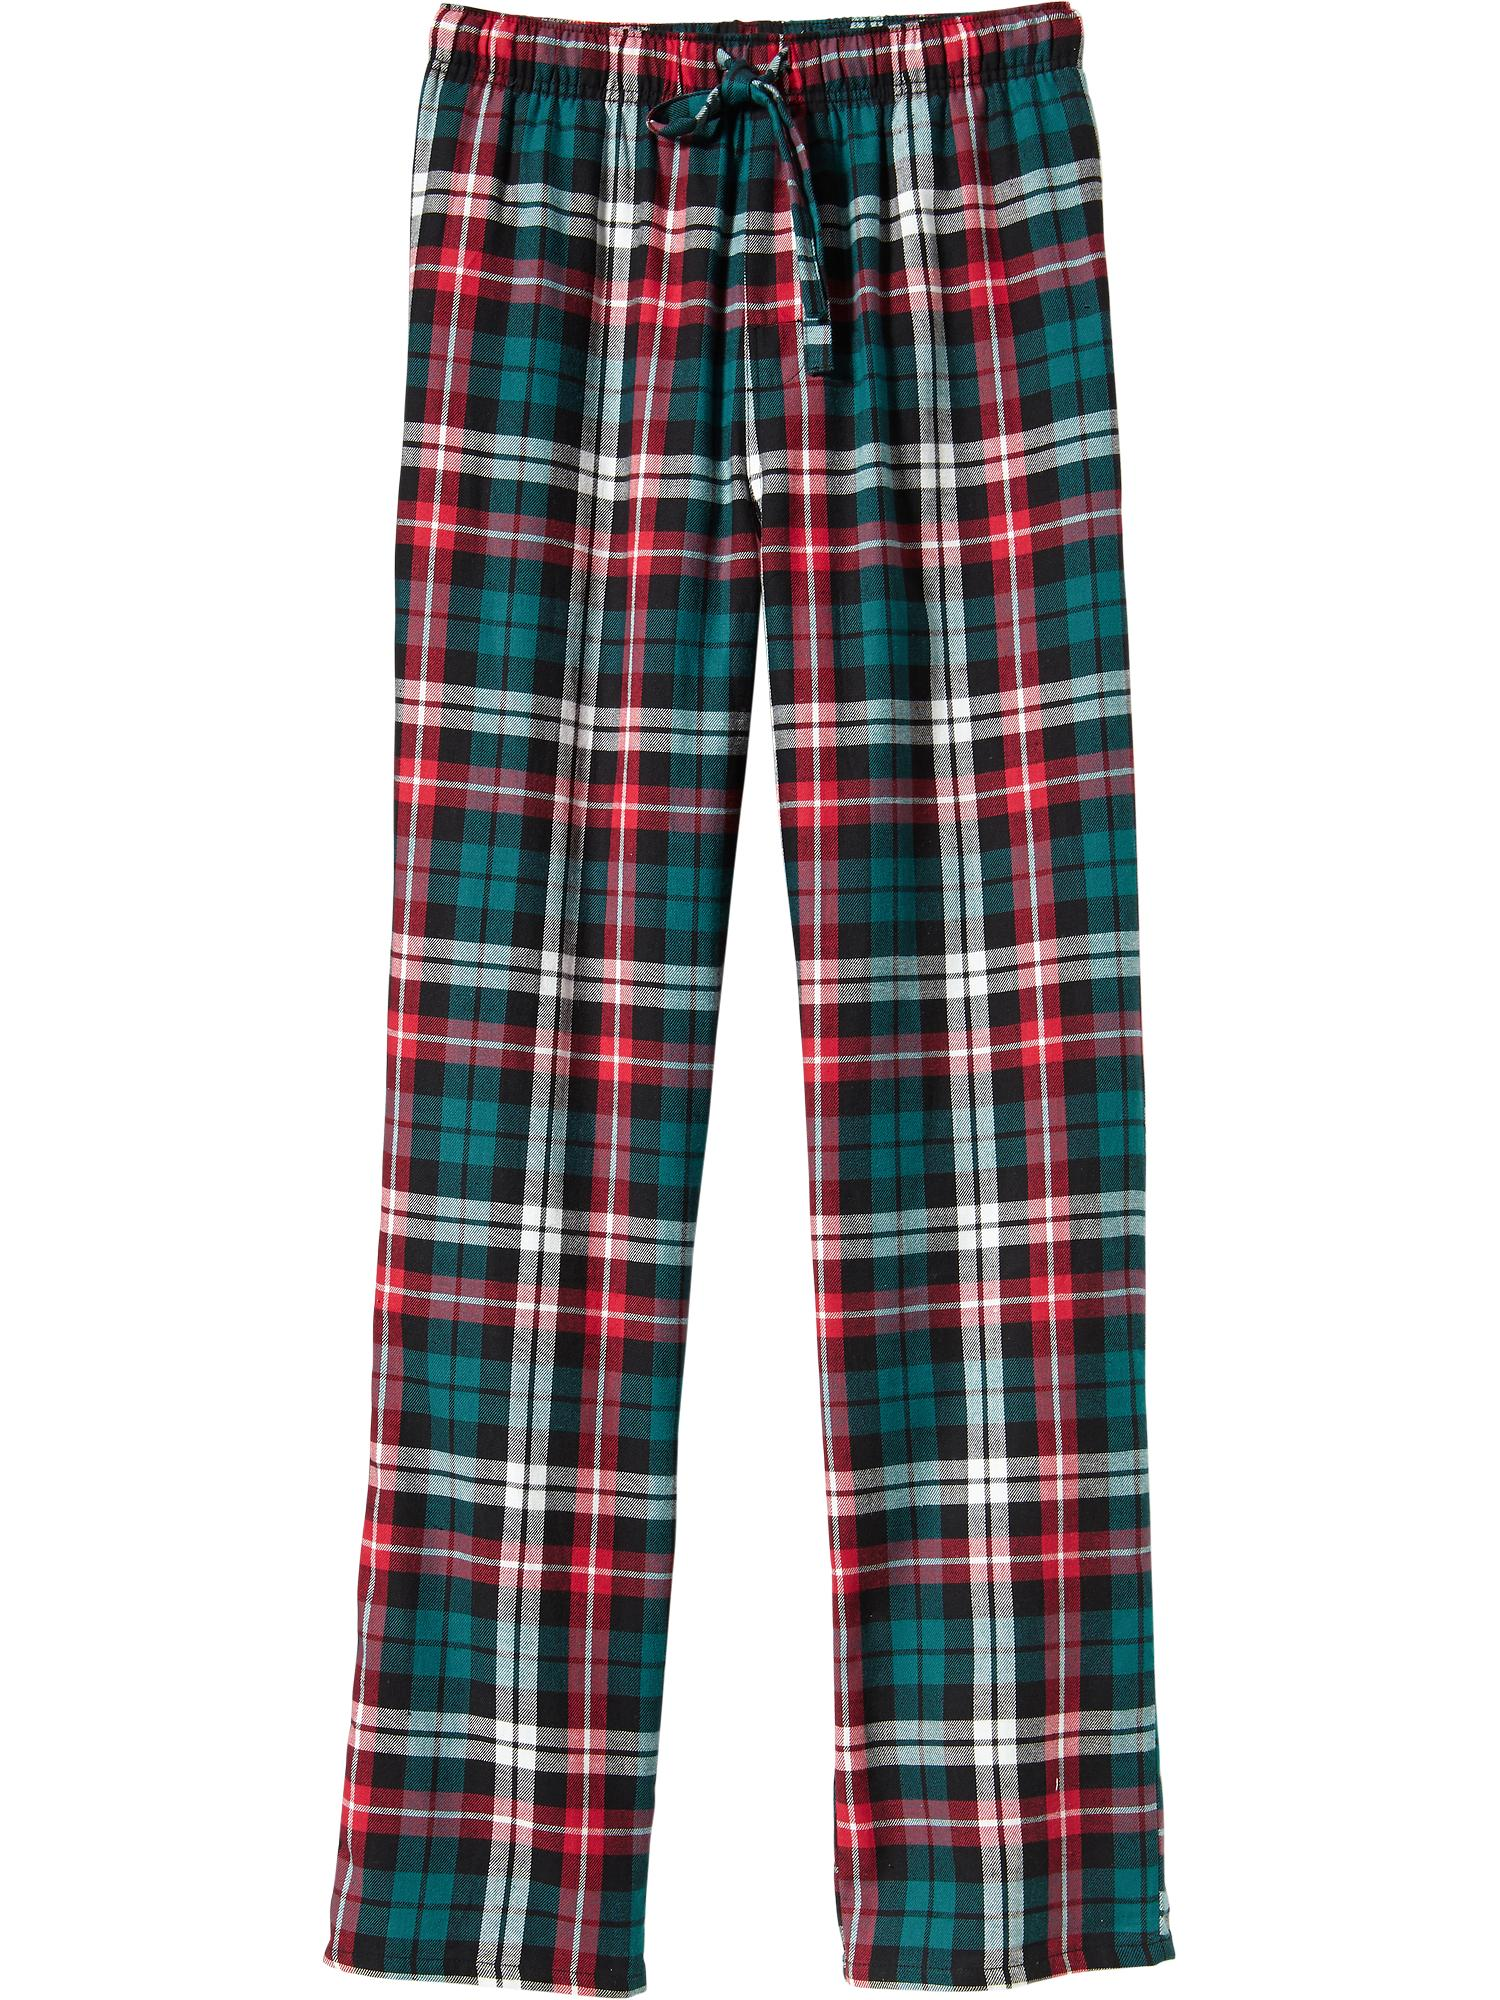 Old Navy Men's Patterned Flannel Pj Pants – Red & Green Plaid ...